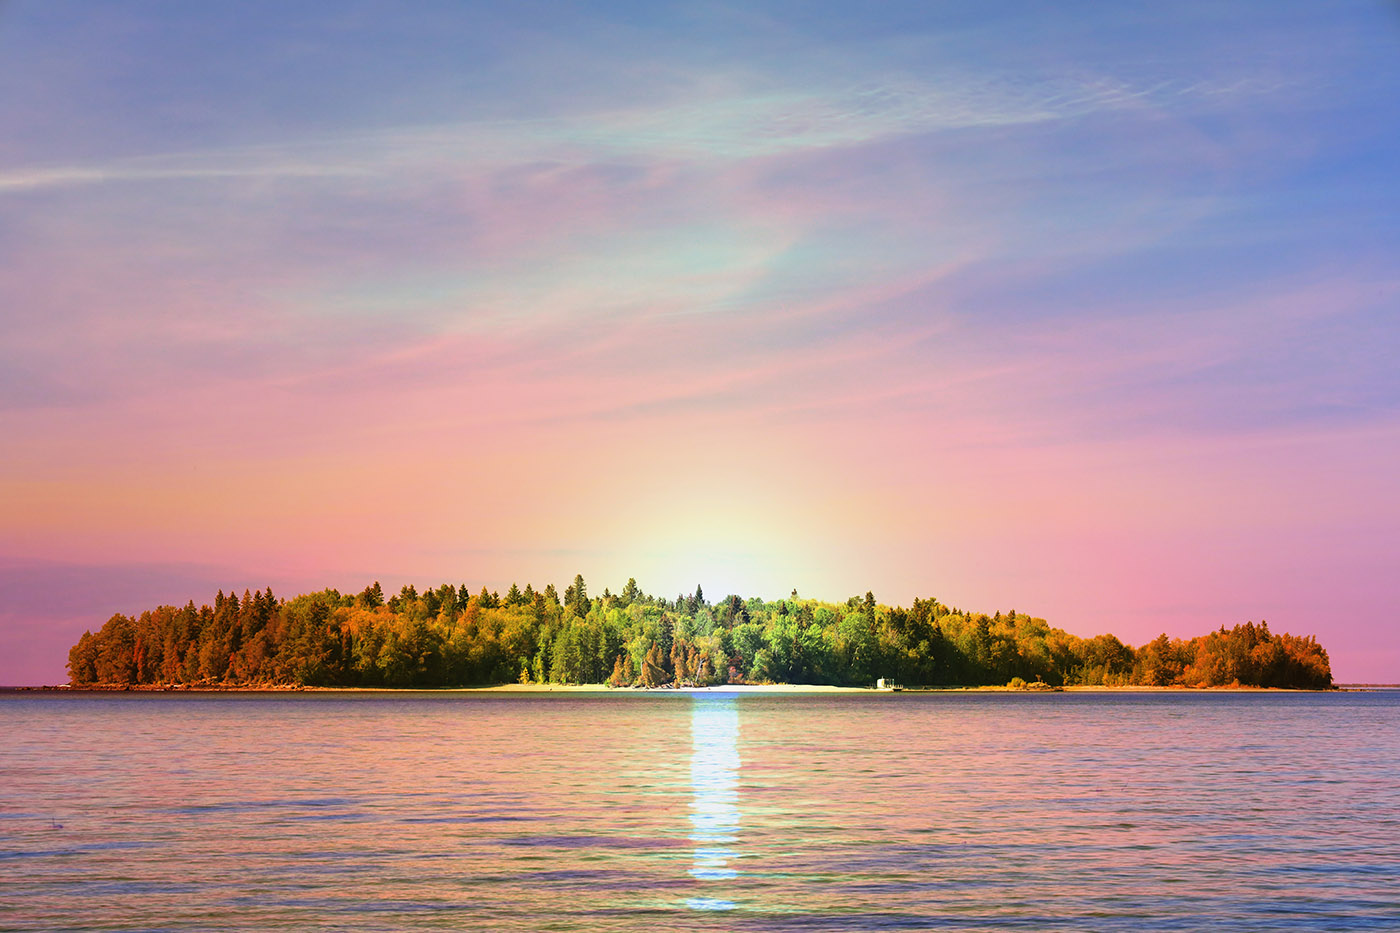 Peaceful Remote Island - Royalty-Free Stock Imagery